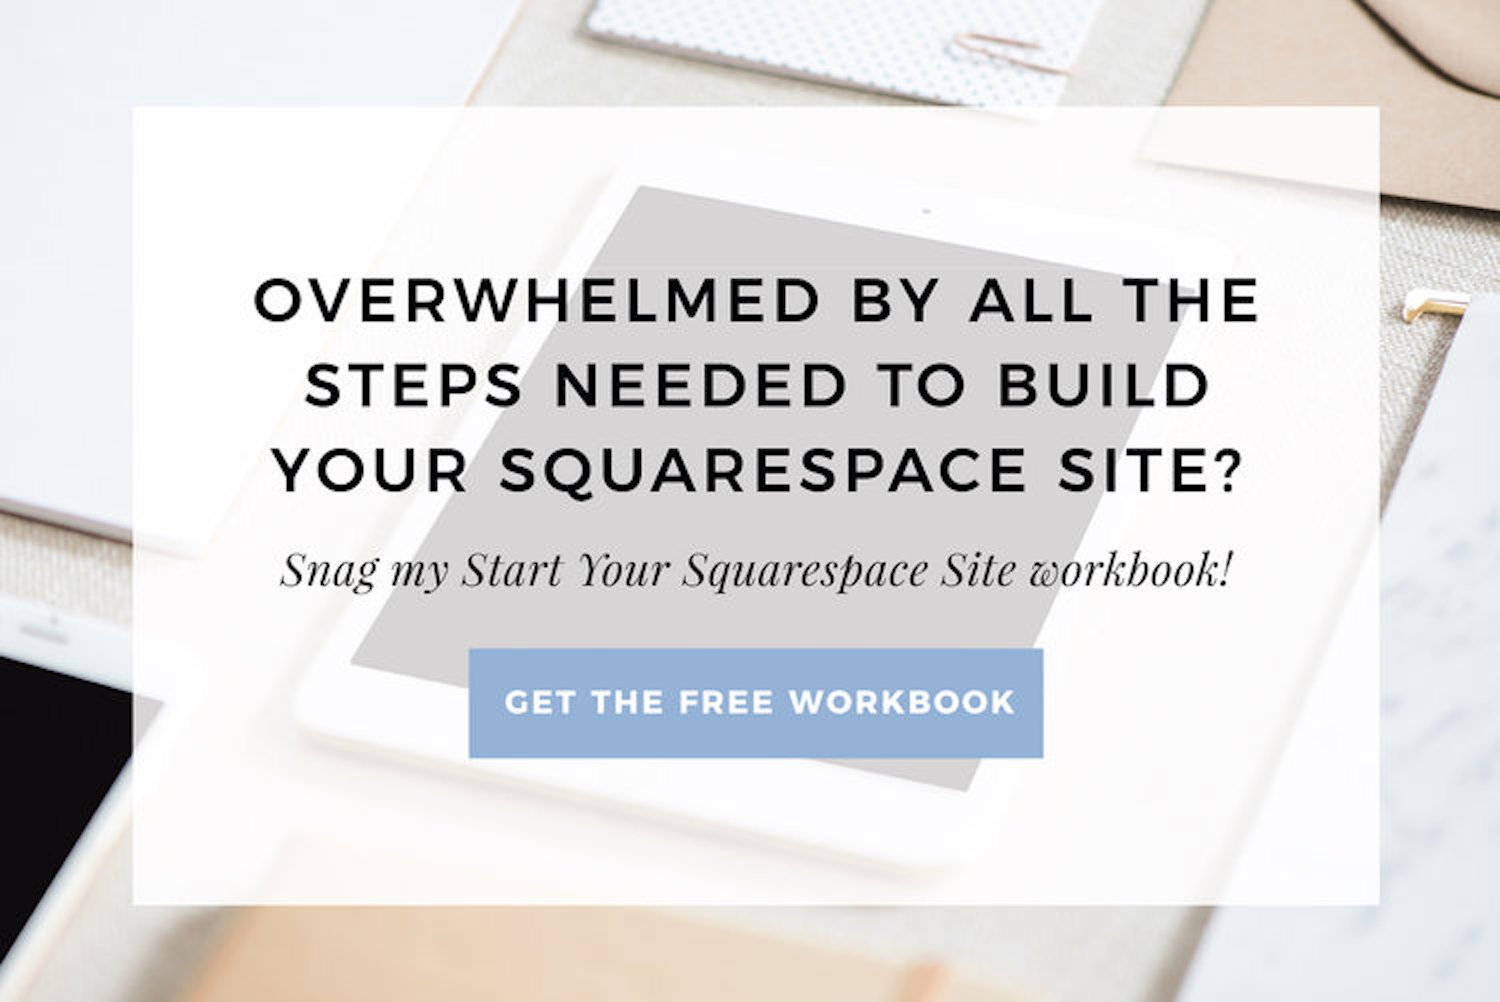 start+your+squarespace+site+workbook+download.jpg